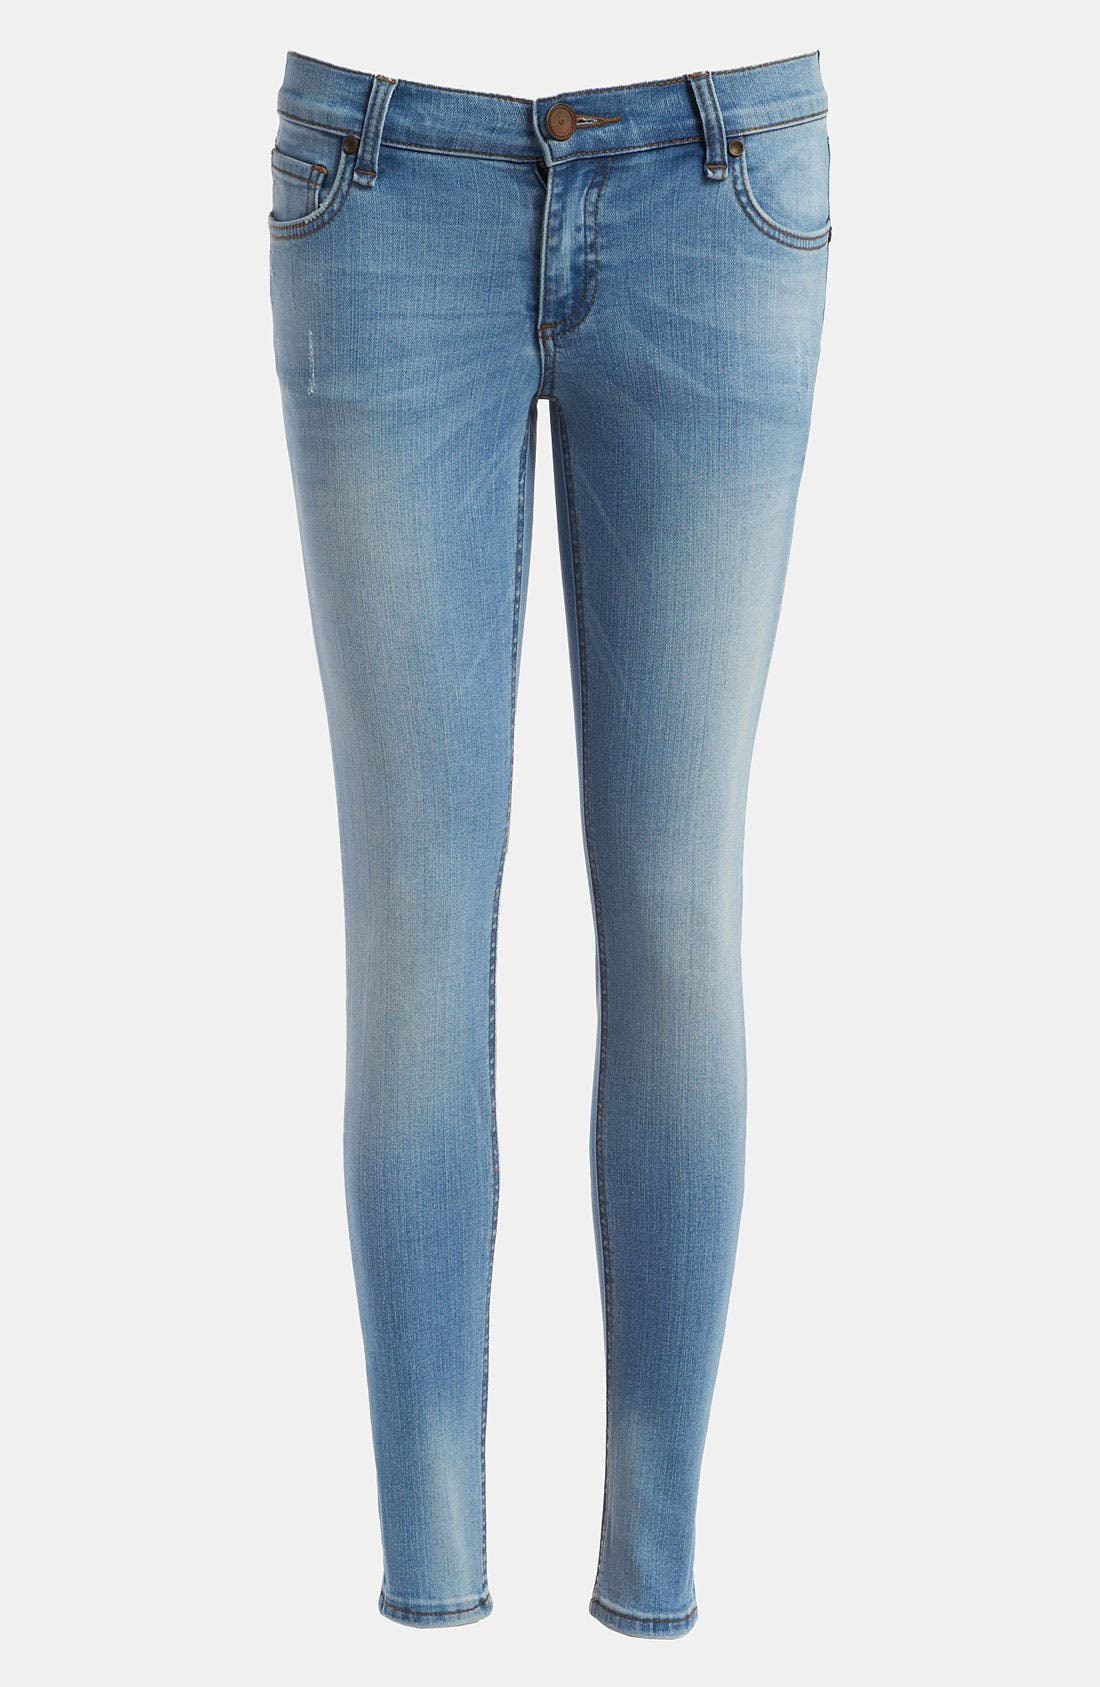 Alternate Image 1 Selected - edyson 'Sloan' Skinny Jeans (Light Pacific)